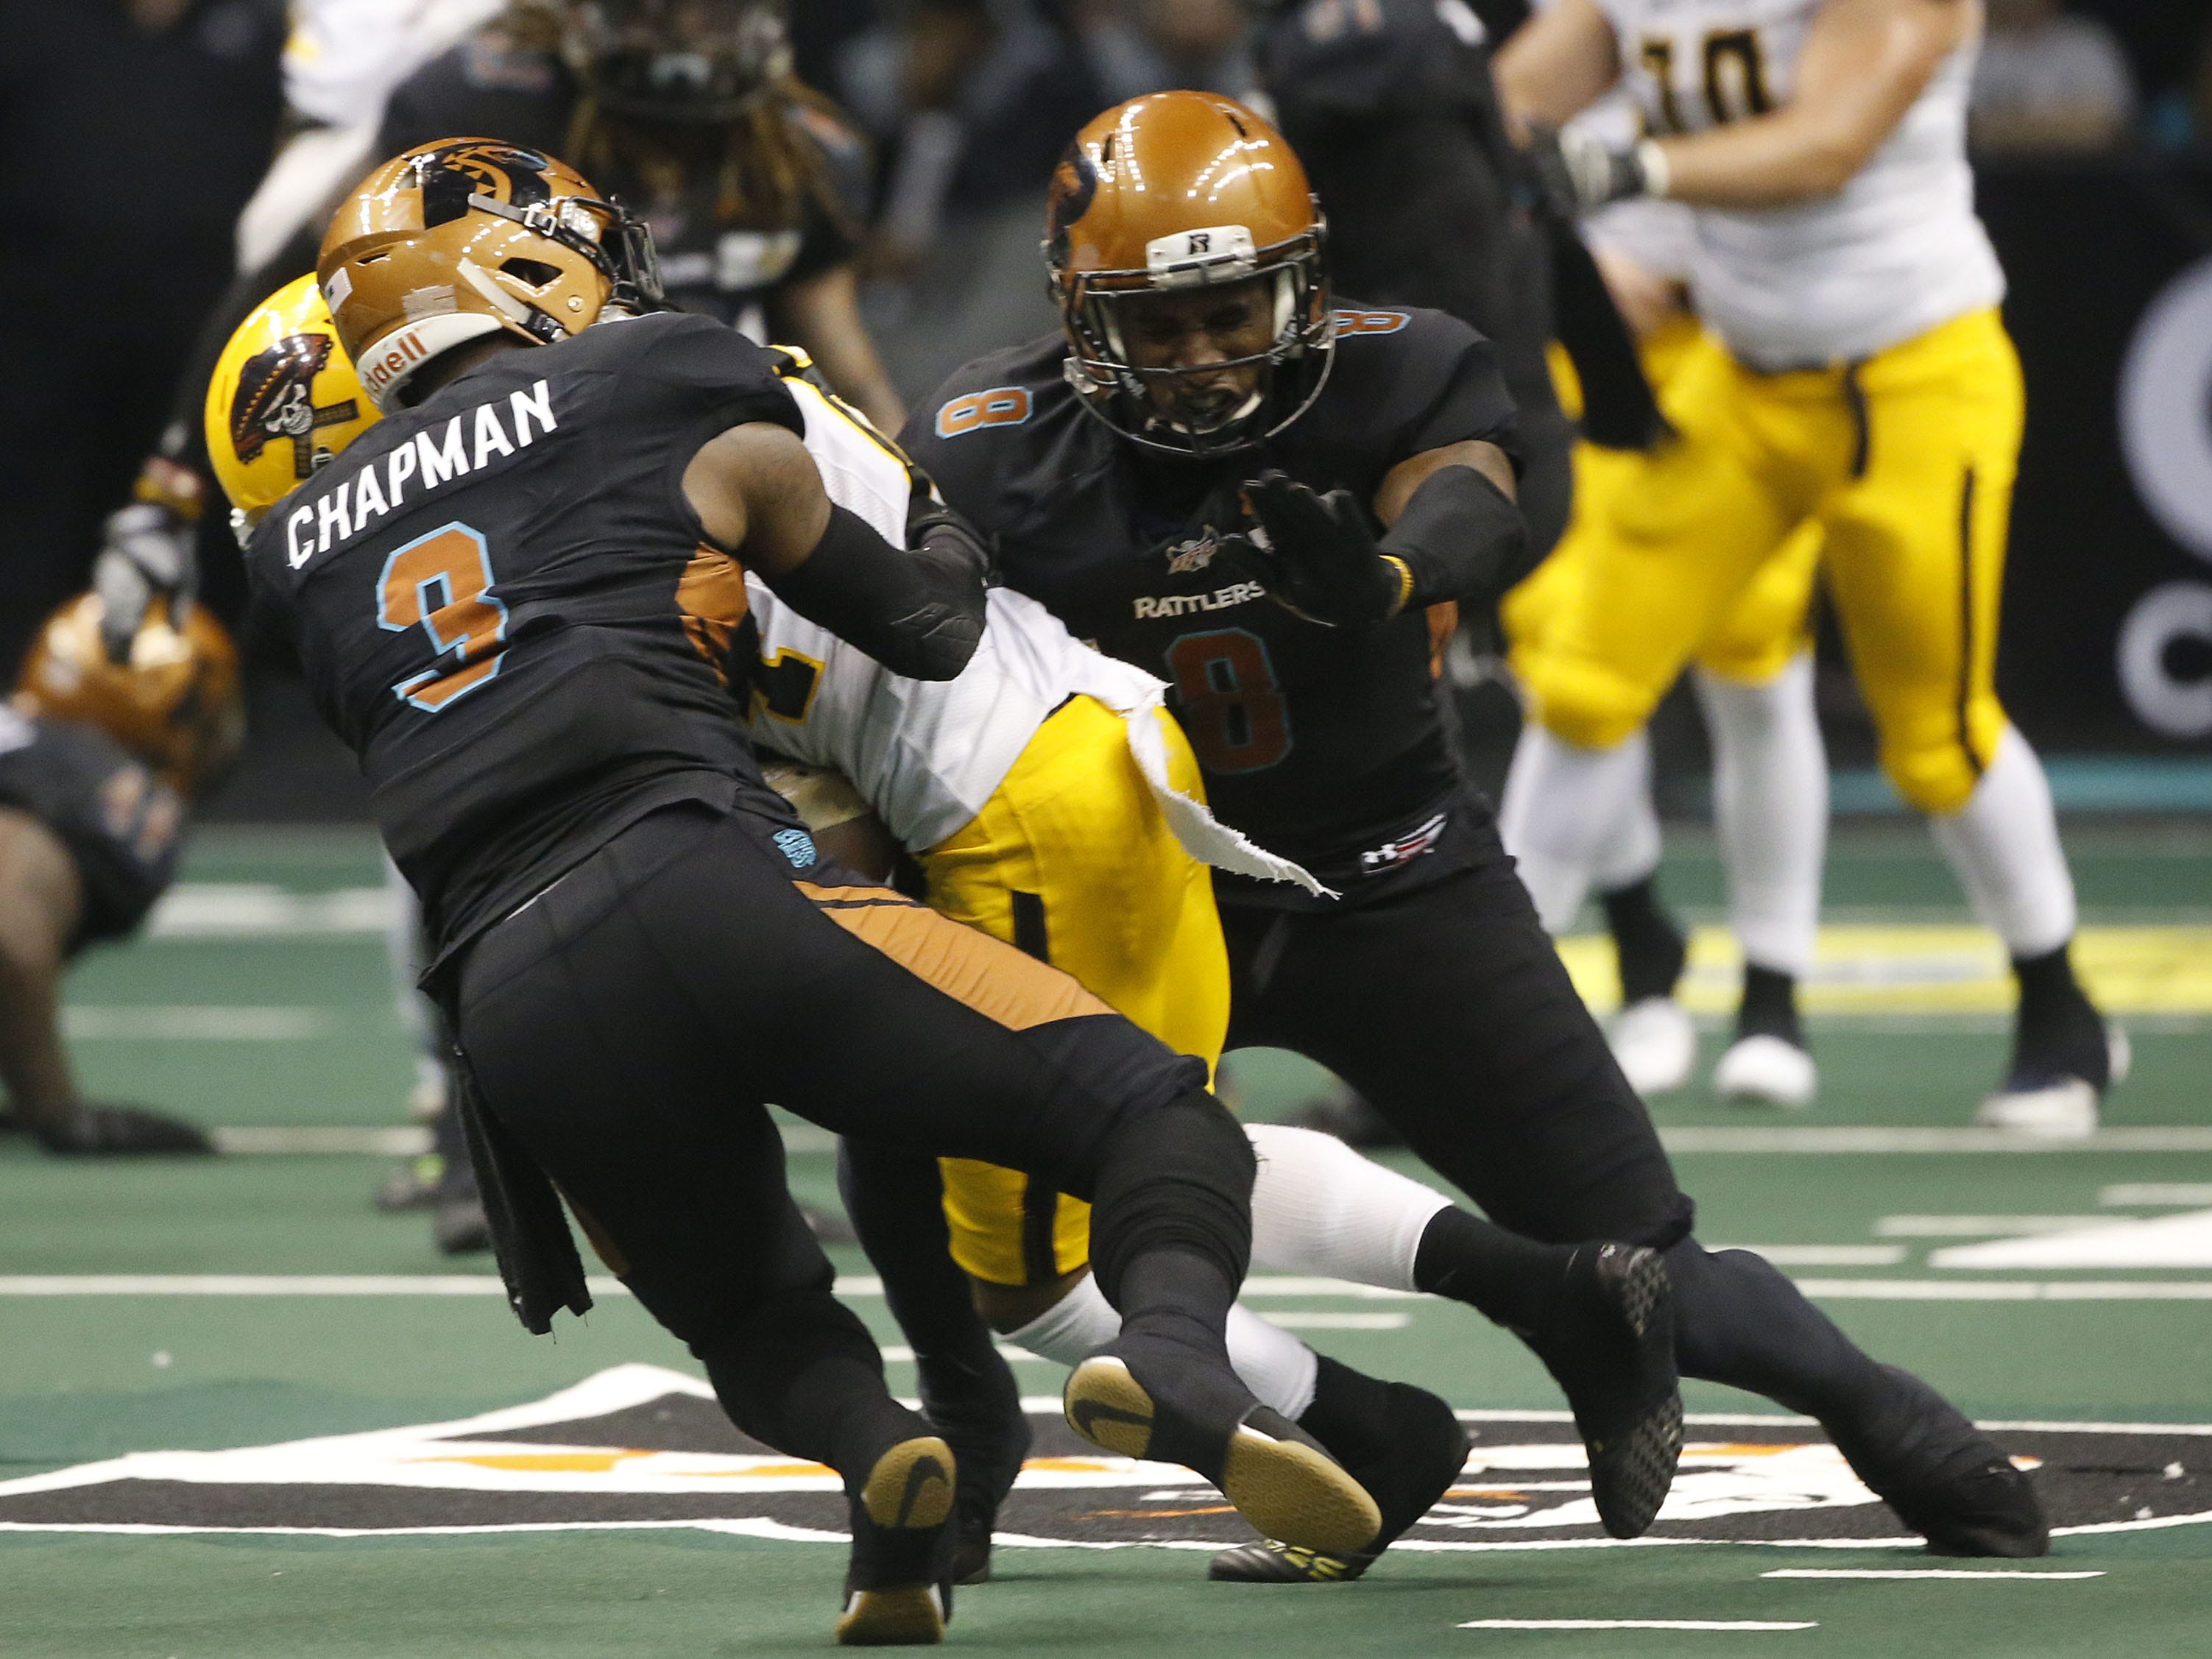 Rattlers' Allen Chapman (3) and Davontae Merriweather (8) tackle Sugar Skulls' Donovan Rasberry (84) during the second half at Talking Stick Resort Arena in Phoenix, Ariz. on March 16, 2019.